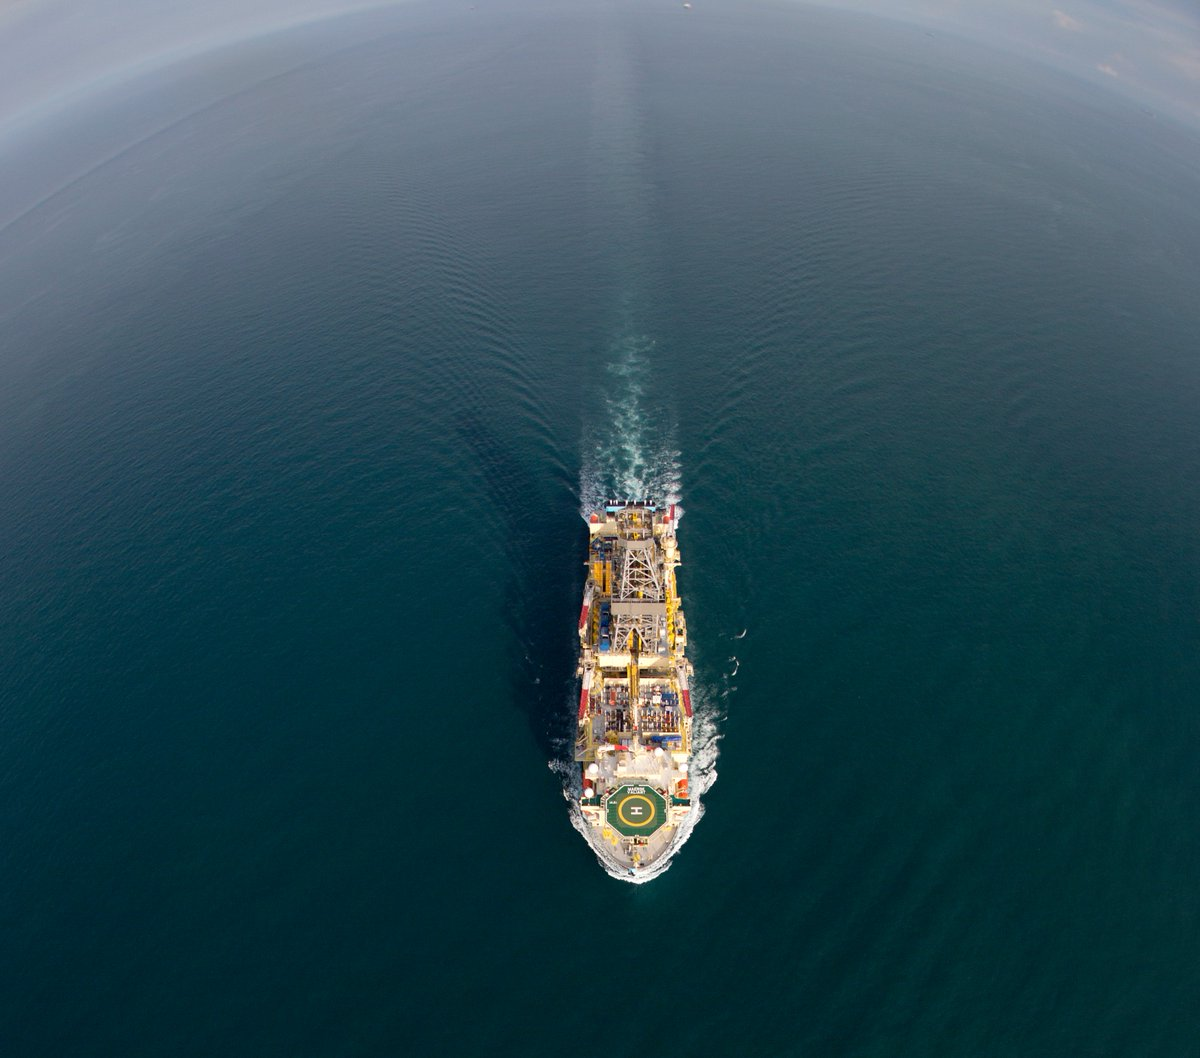 Wonderful news! #OurPeople on #MaerskValiant will be moving to Mexico for @Repsol on a two-well project, set to commence in March 2020. Curious to know more? https://maerskd.co/Valiant #MaerskDrilling